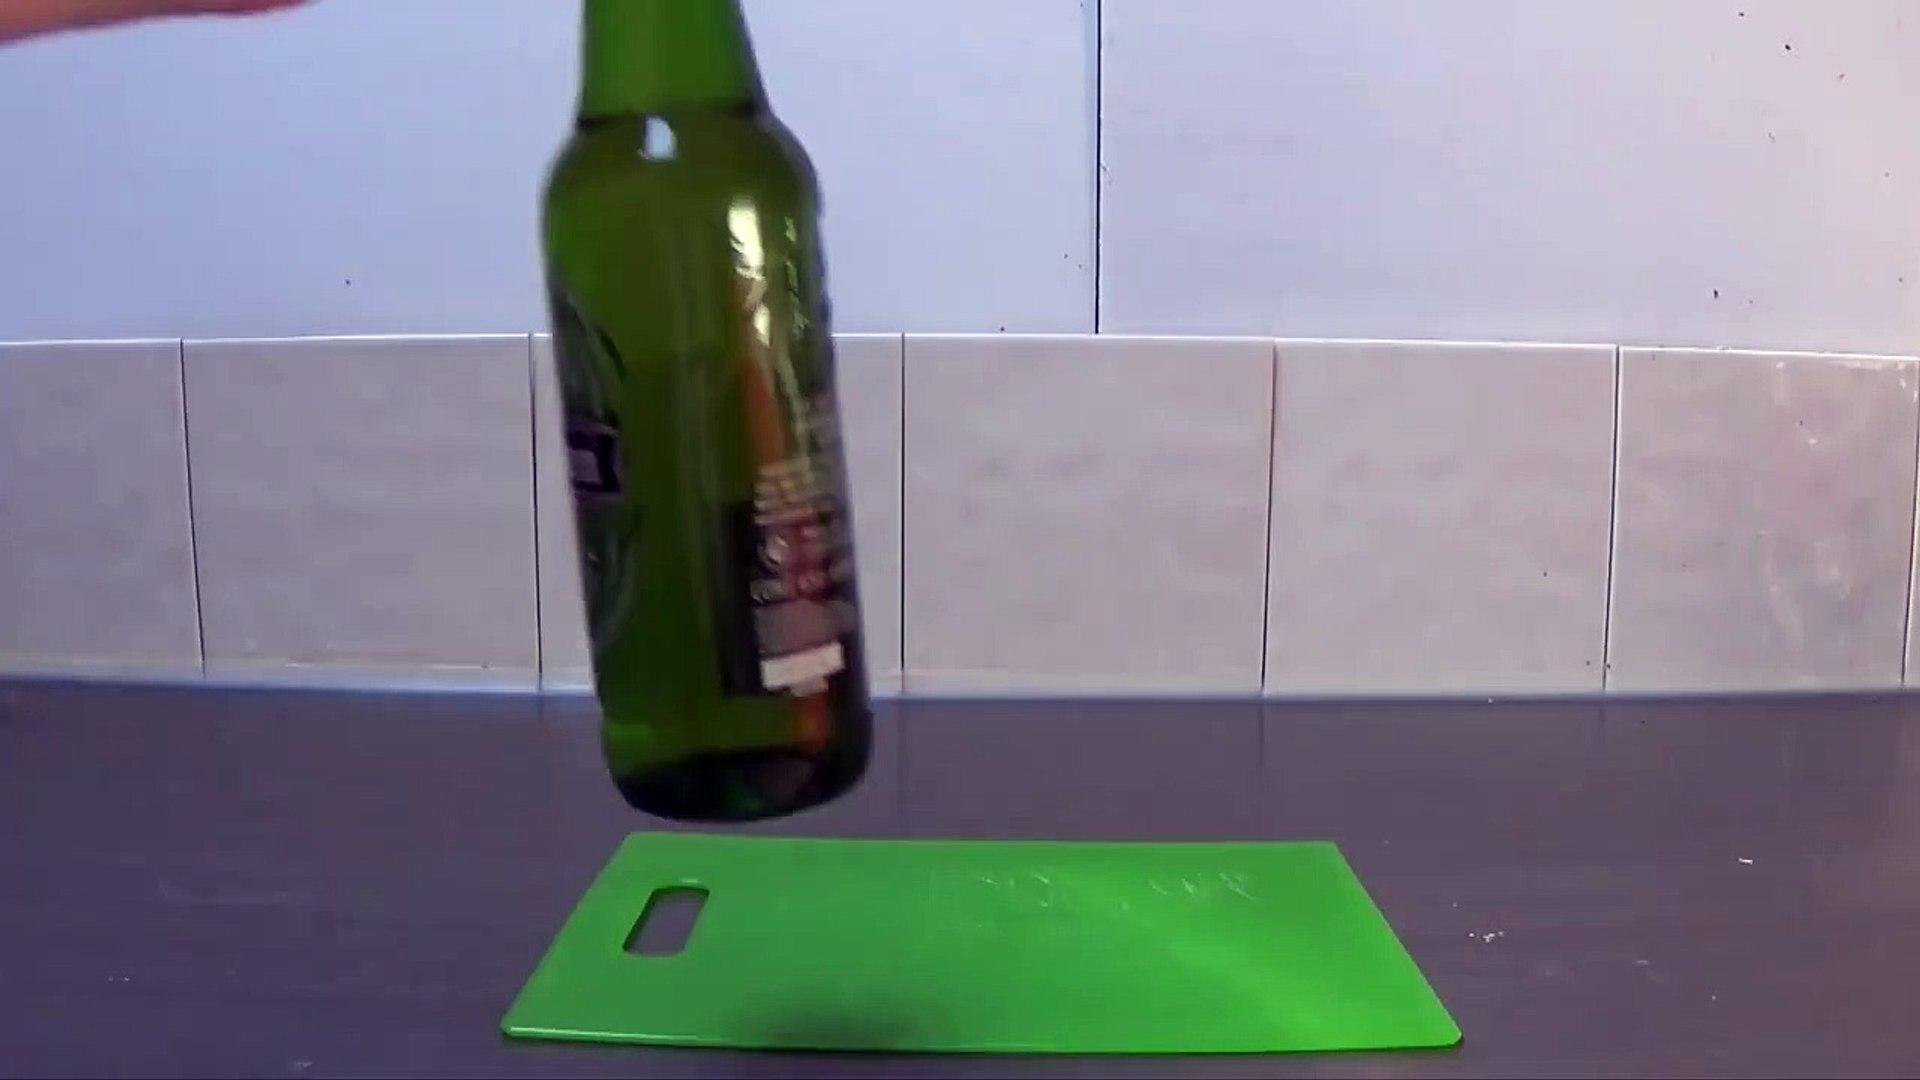 How To Open a Bottle Without a Bottle Ope